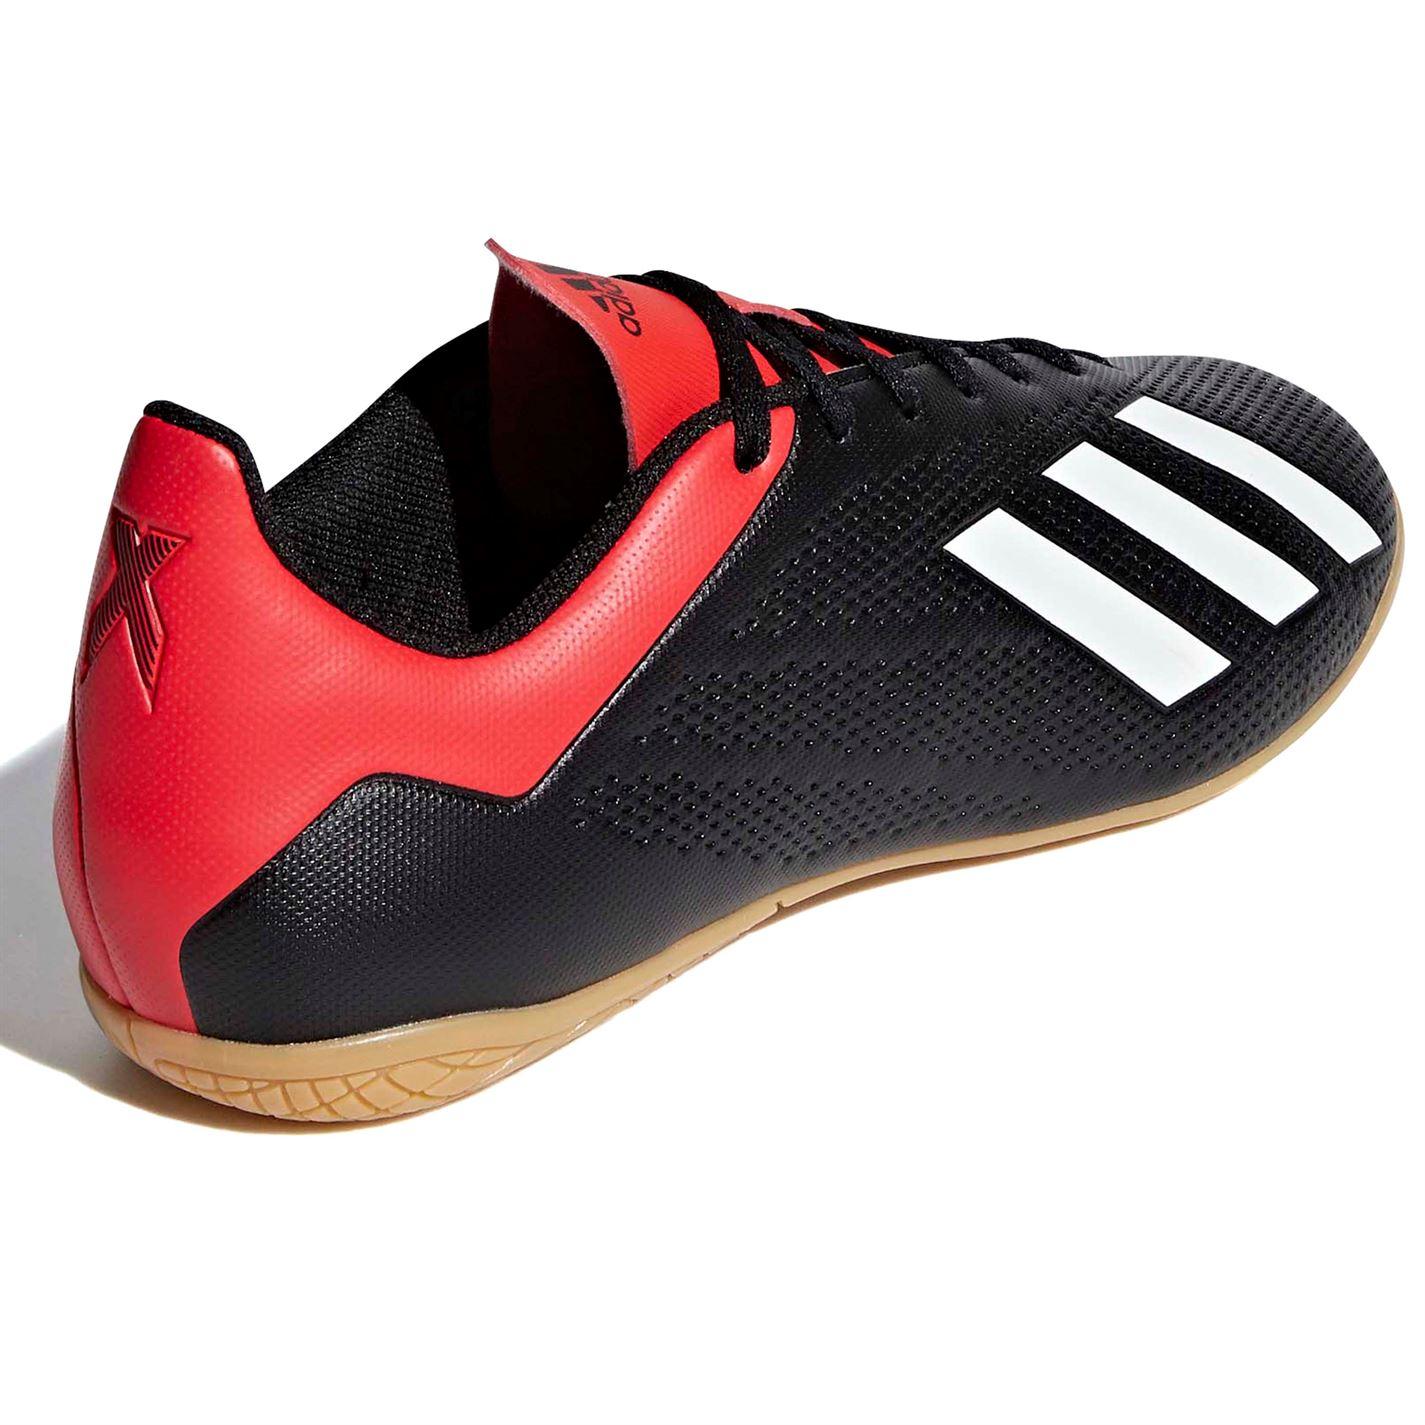 adidas X Tango 18.4 Indoor Football Sneakers Mens Gents Boots Laces Fastened